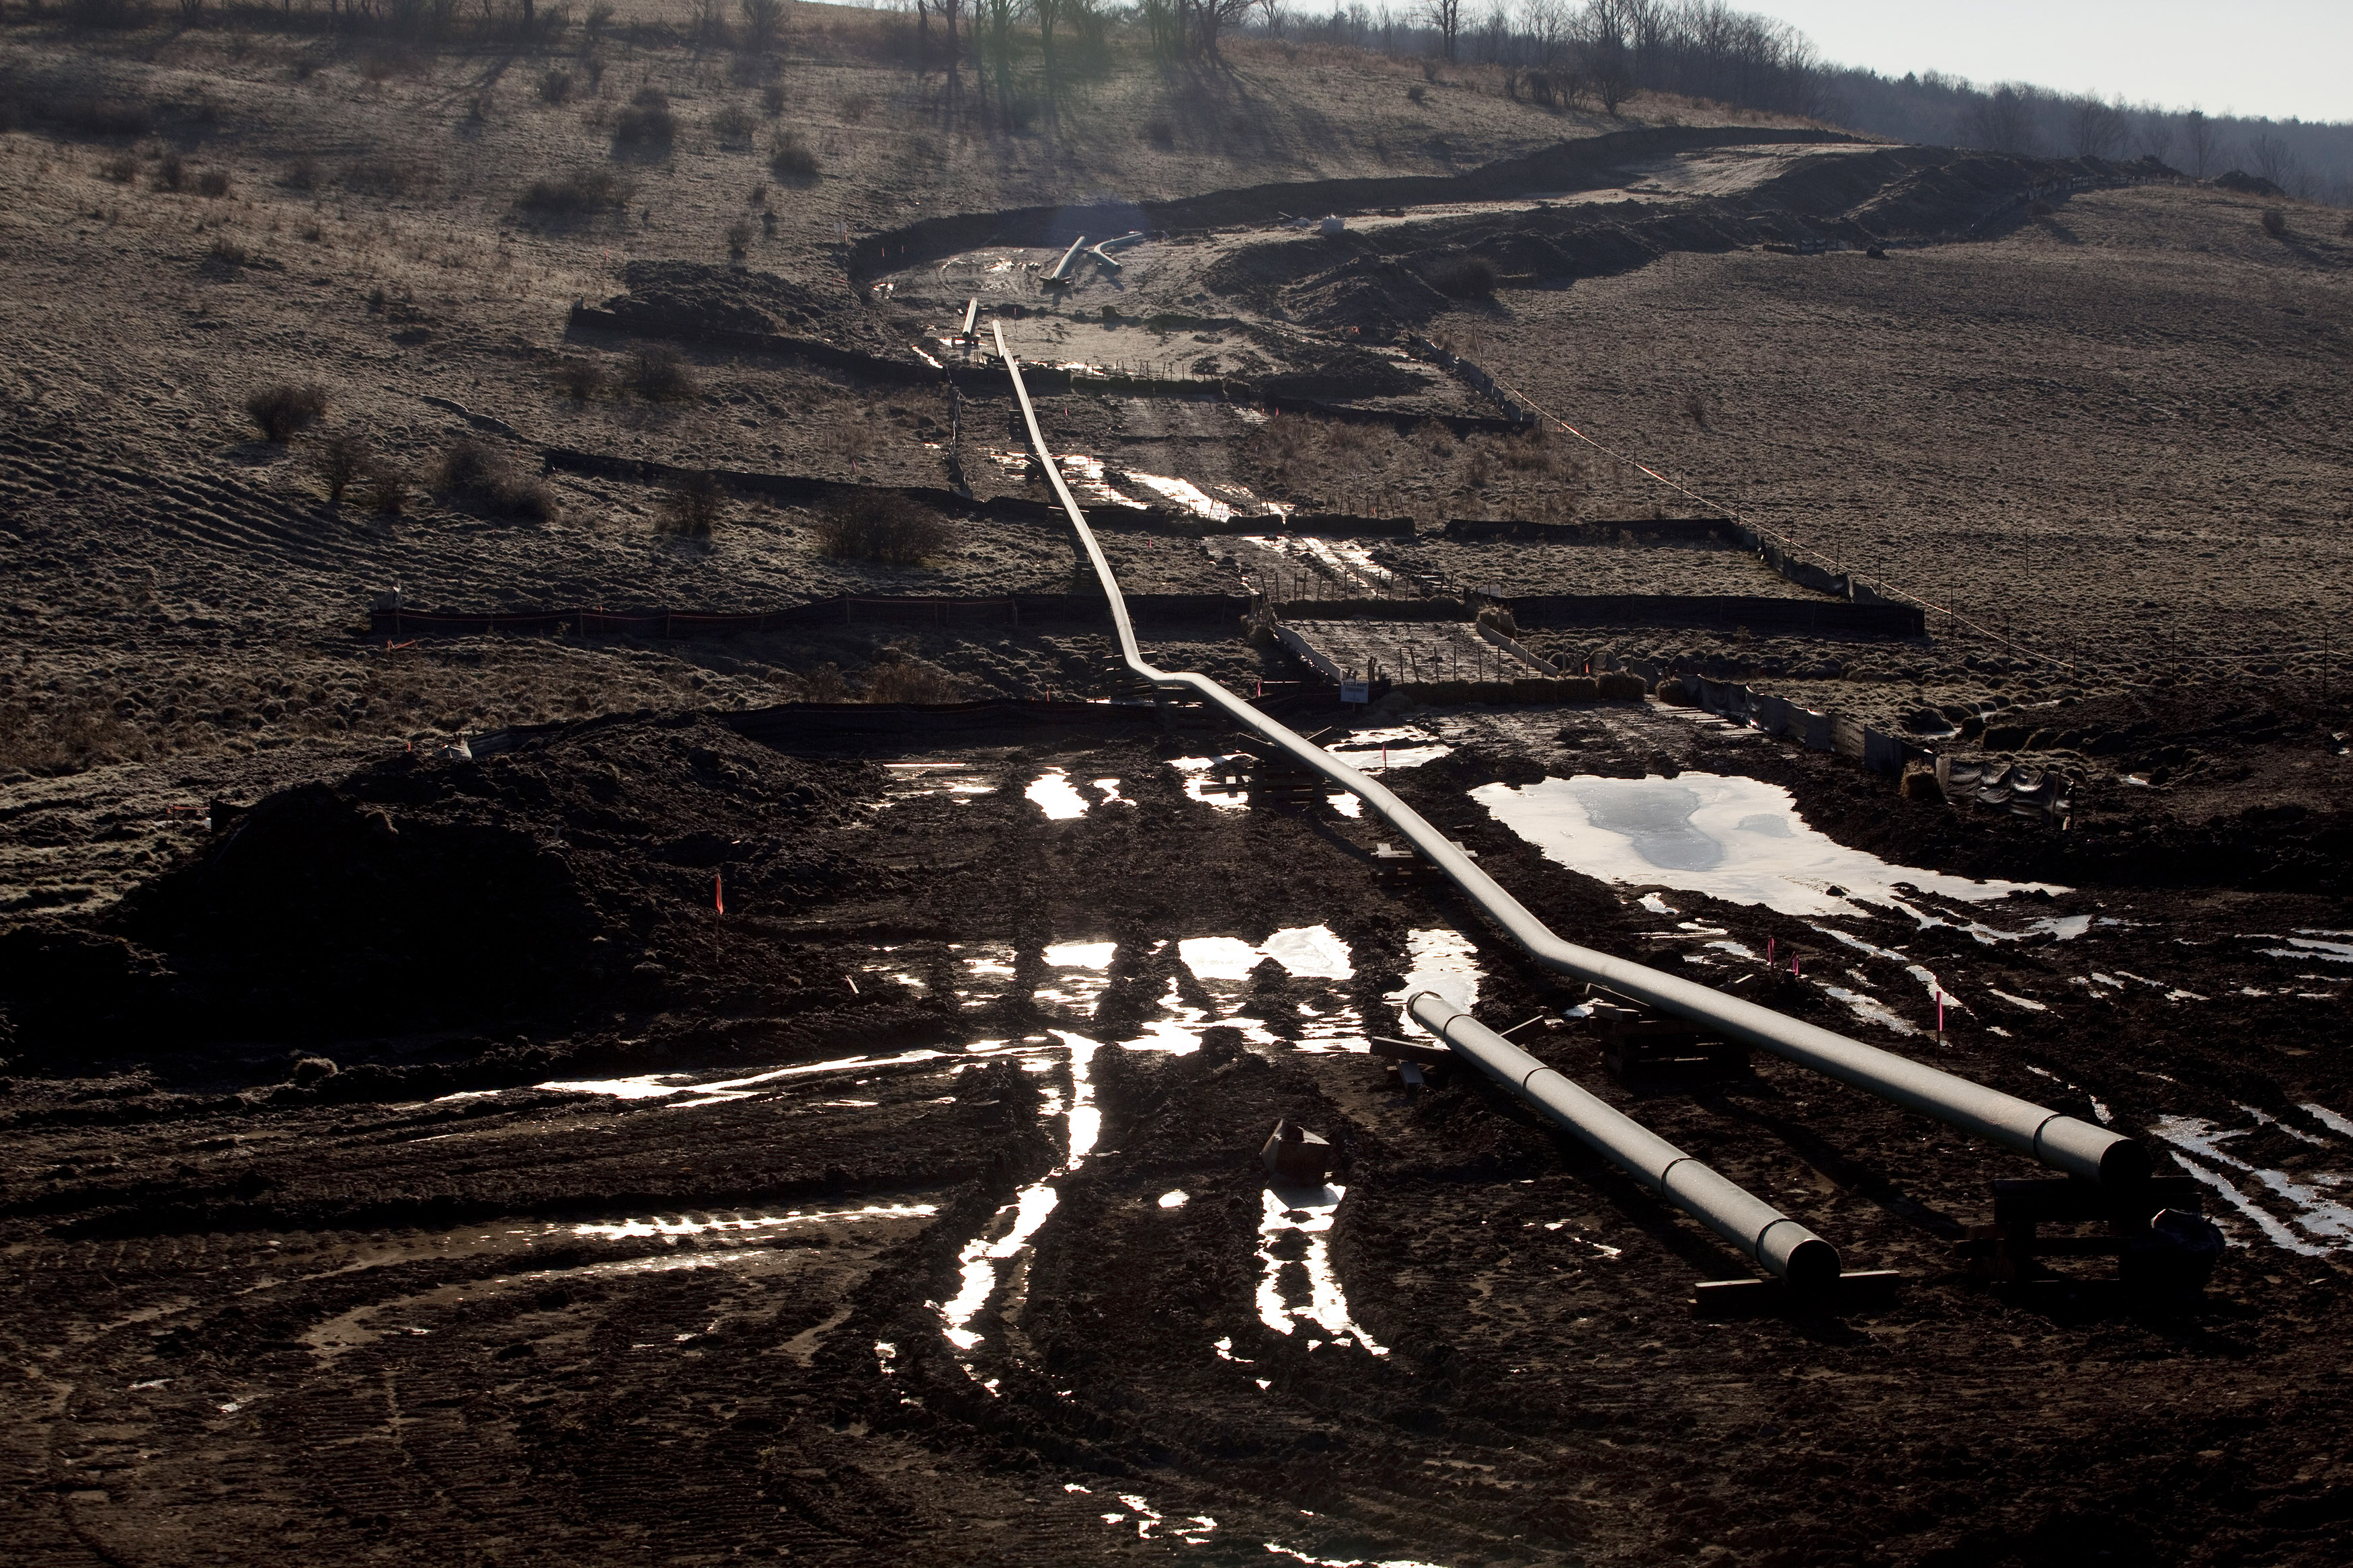 A natural gas pipeline is seen under construction in Bradford County, Pennsylvania, January 7, 2012.  REUTERS/Les Stone